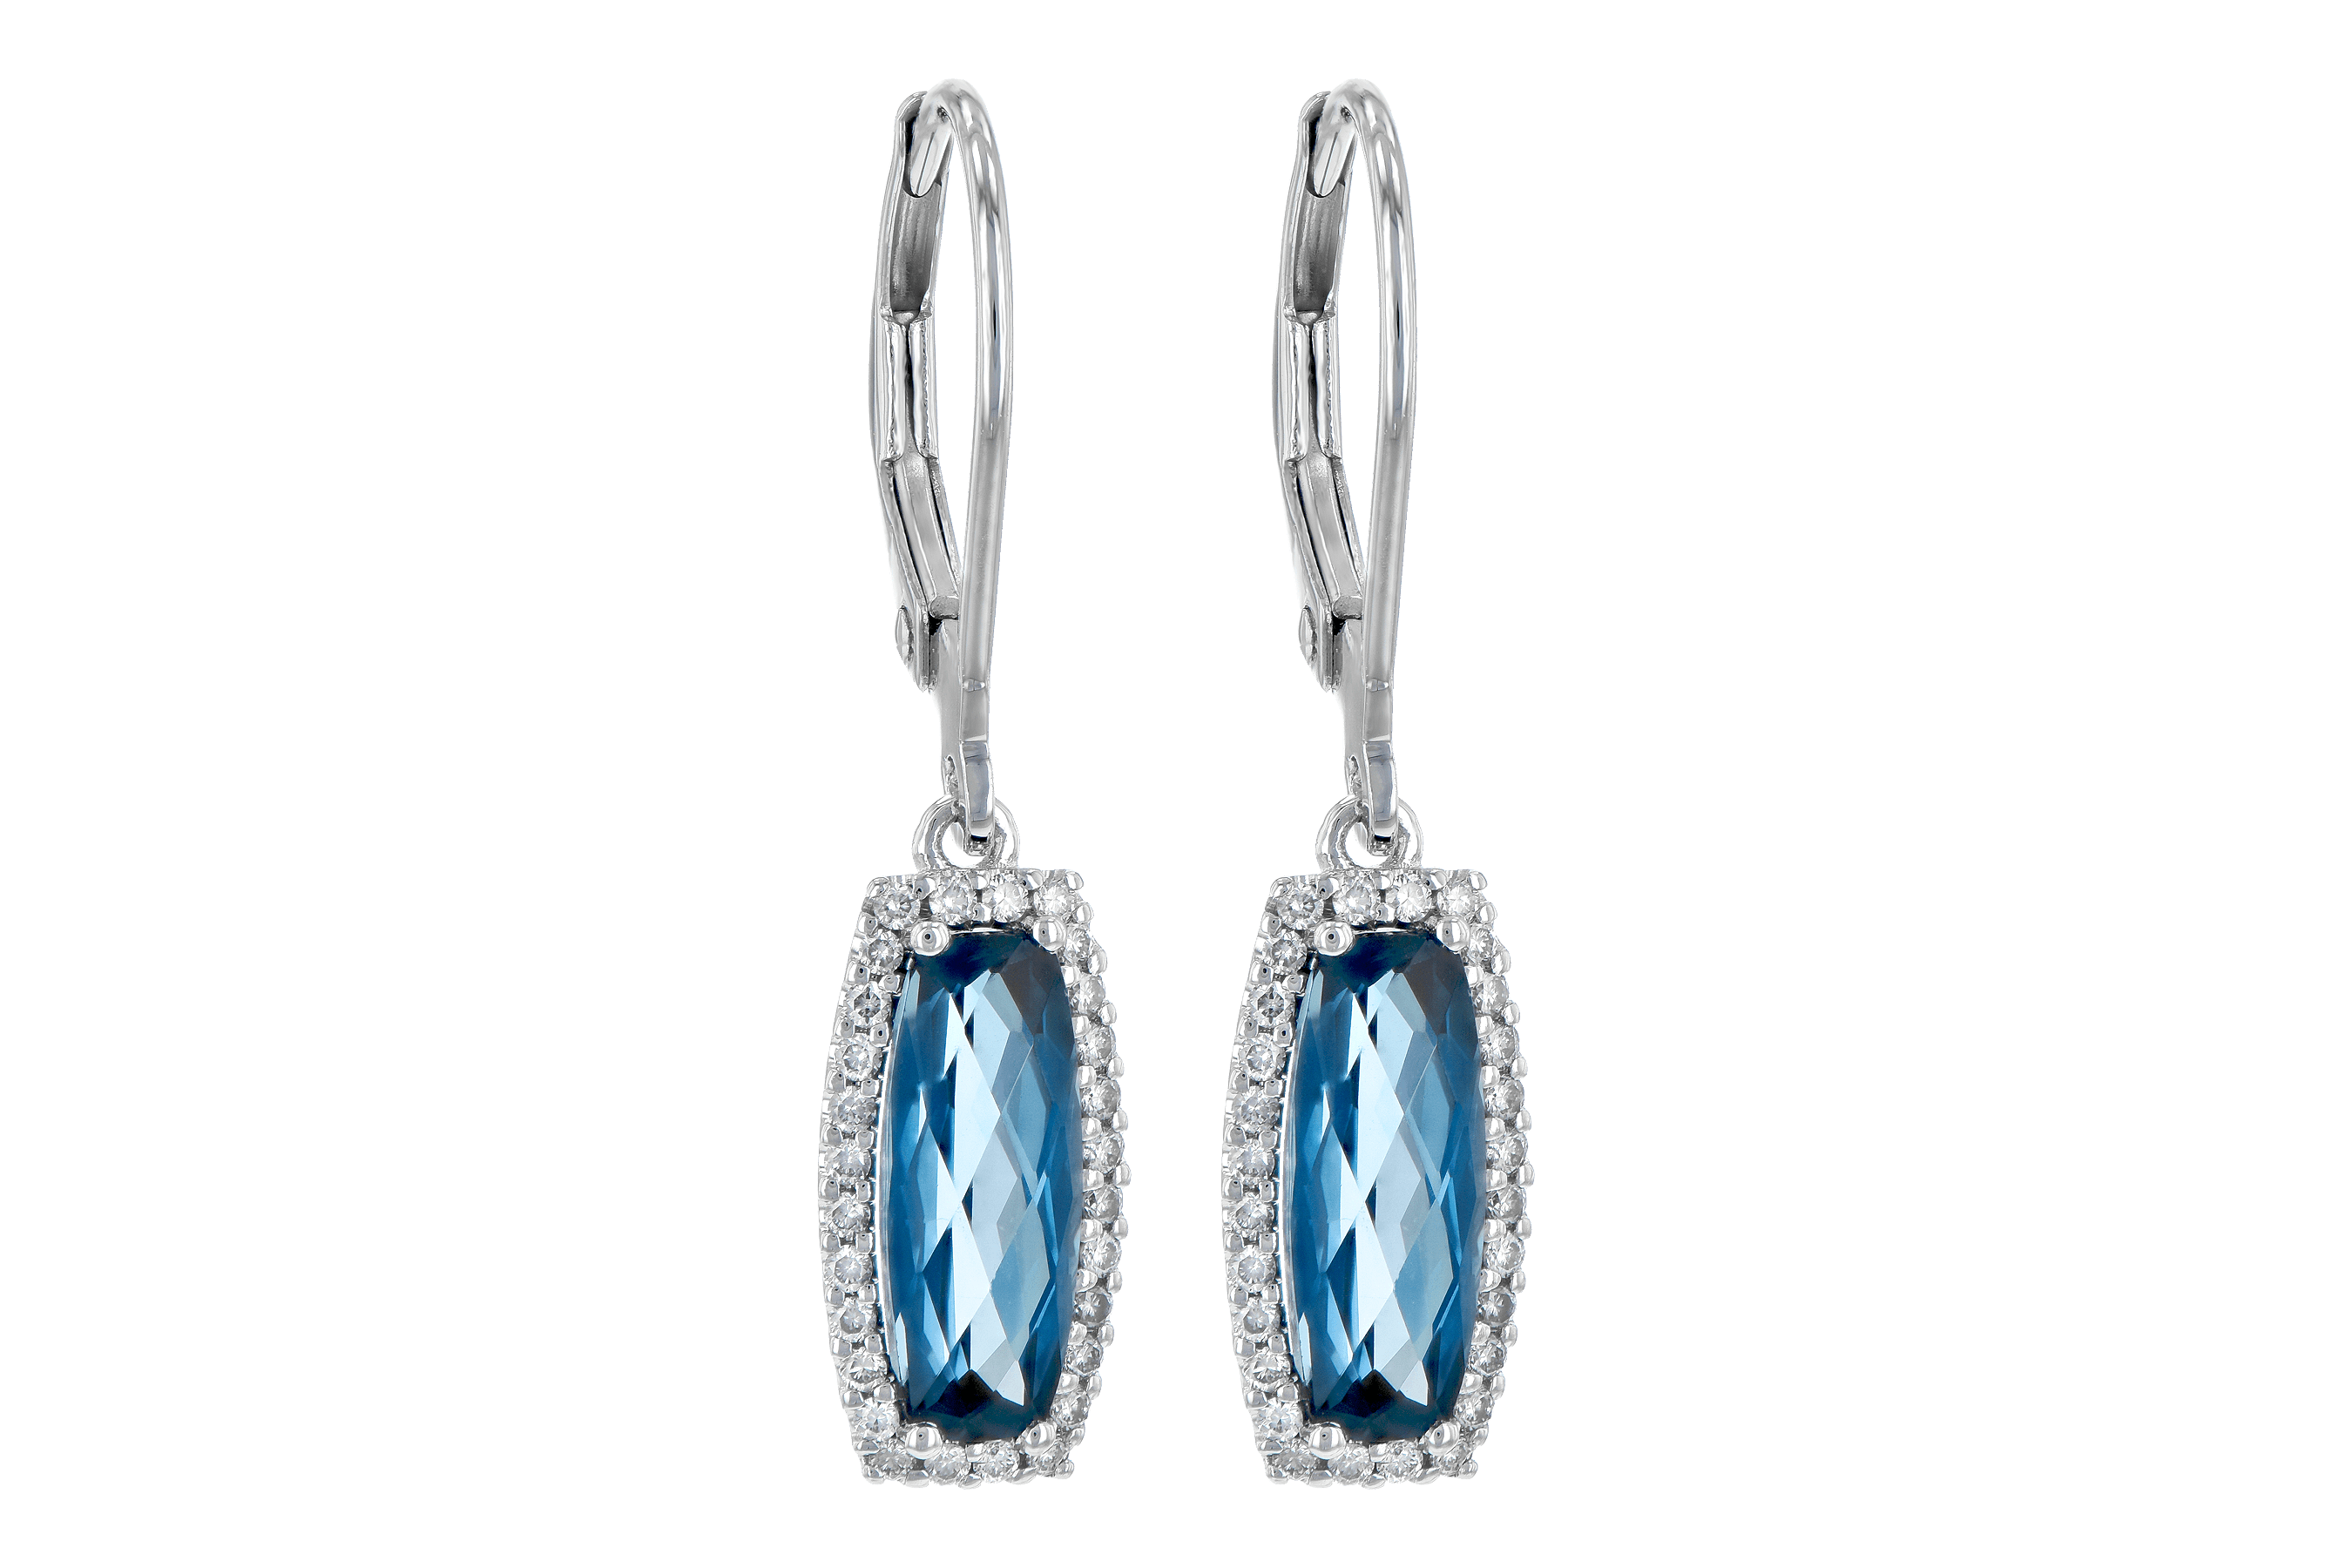 A190-15213: EARR 2.10 LONDON BLUE TOPAZ 2.28 TGW